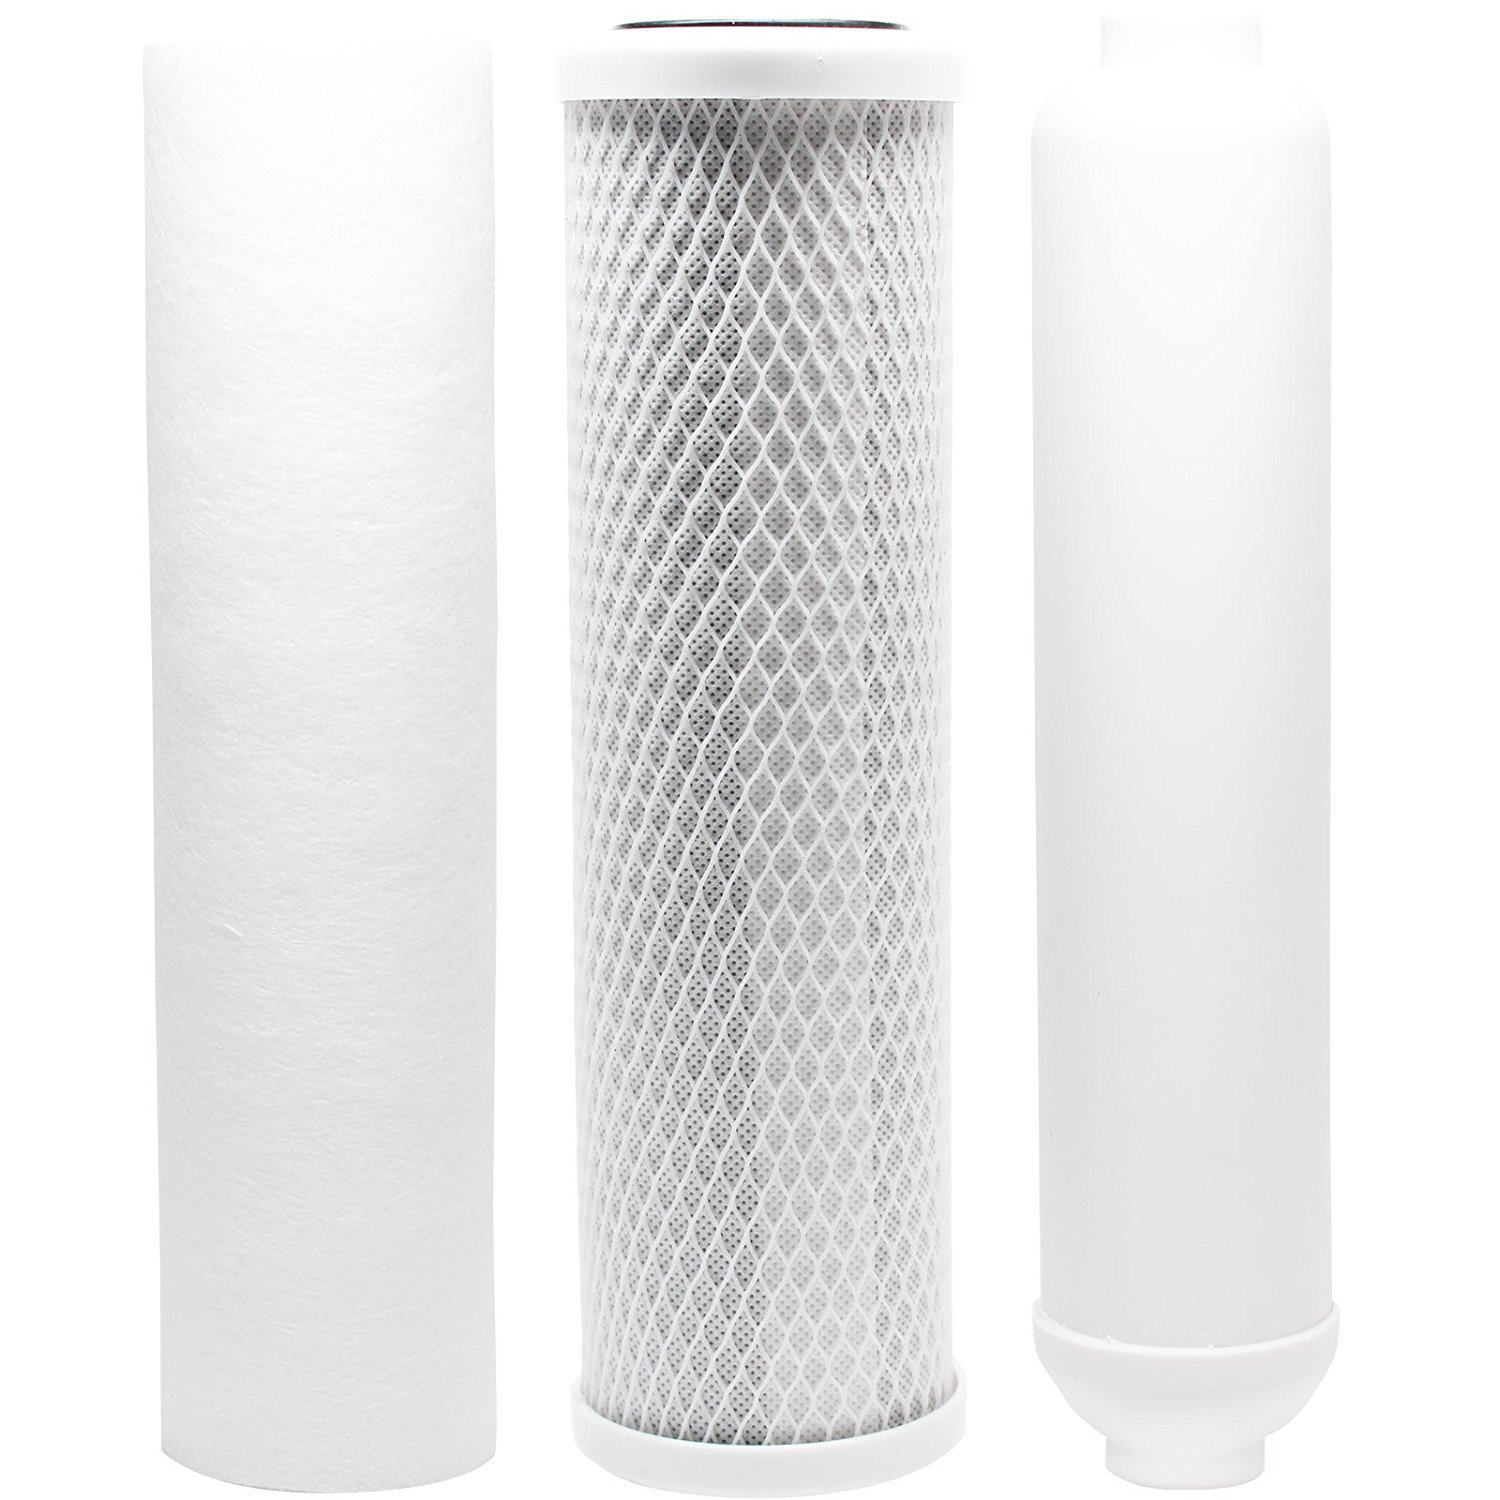 Replacement Filter Kit for Vertex PT 4.0 RO System - Includes Carbon Block Filter, PP Sediment Filter & Inline Filter Cartridge by CFS